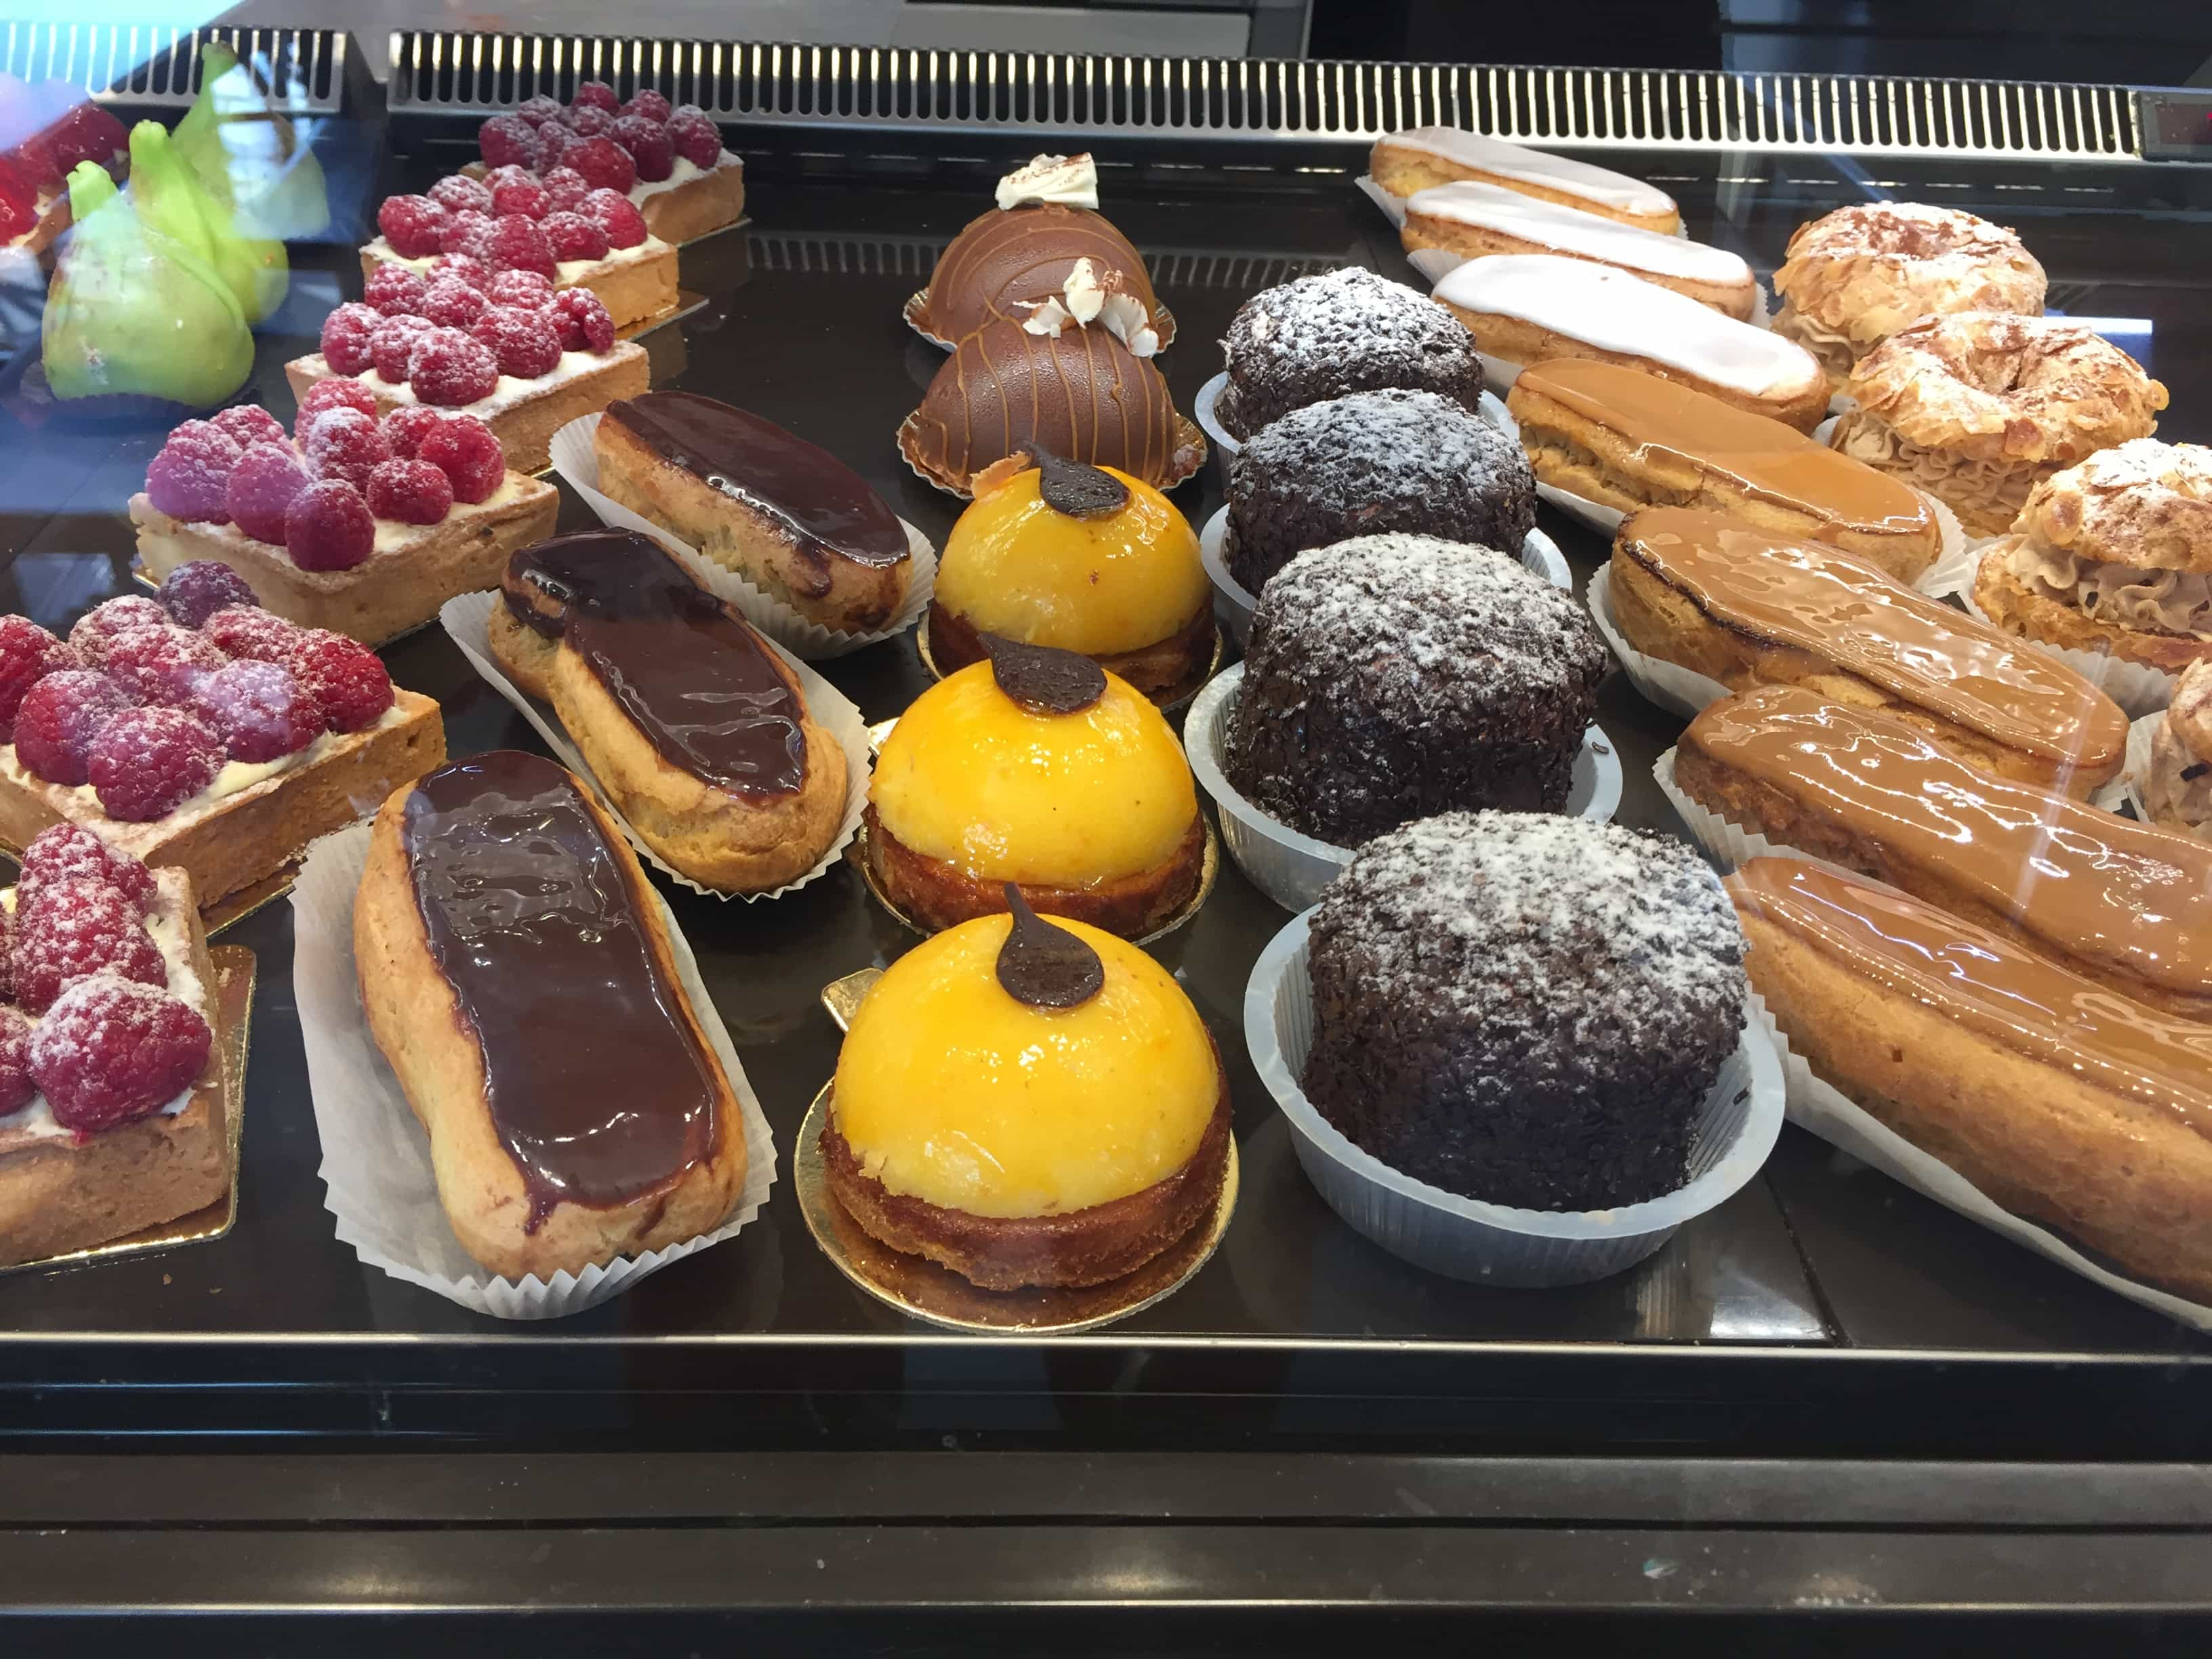 Delicious baked items at a boulangerie close to the studio